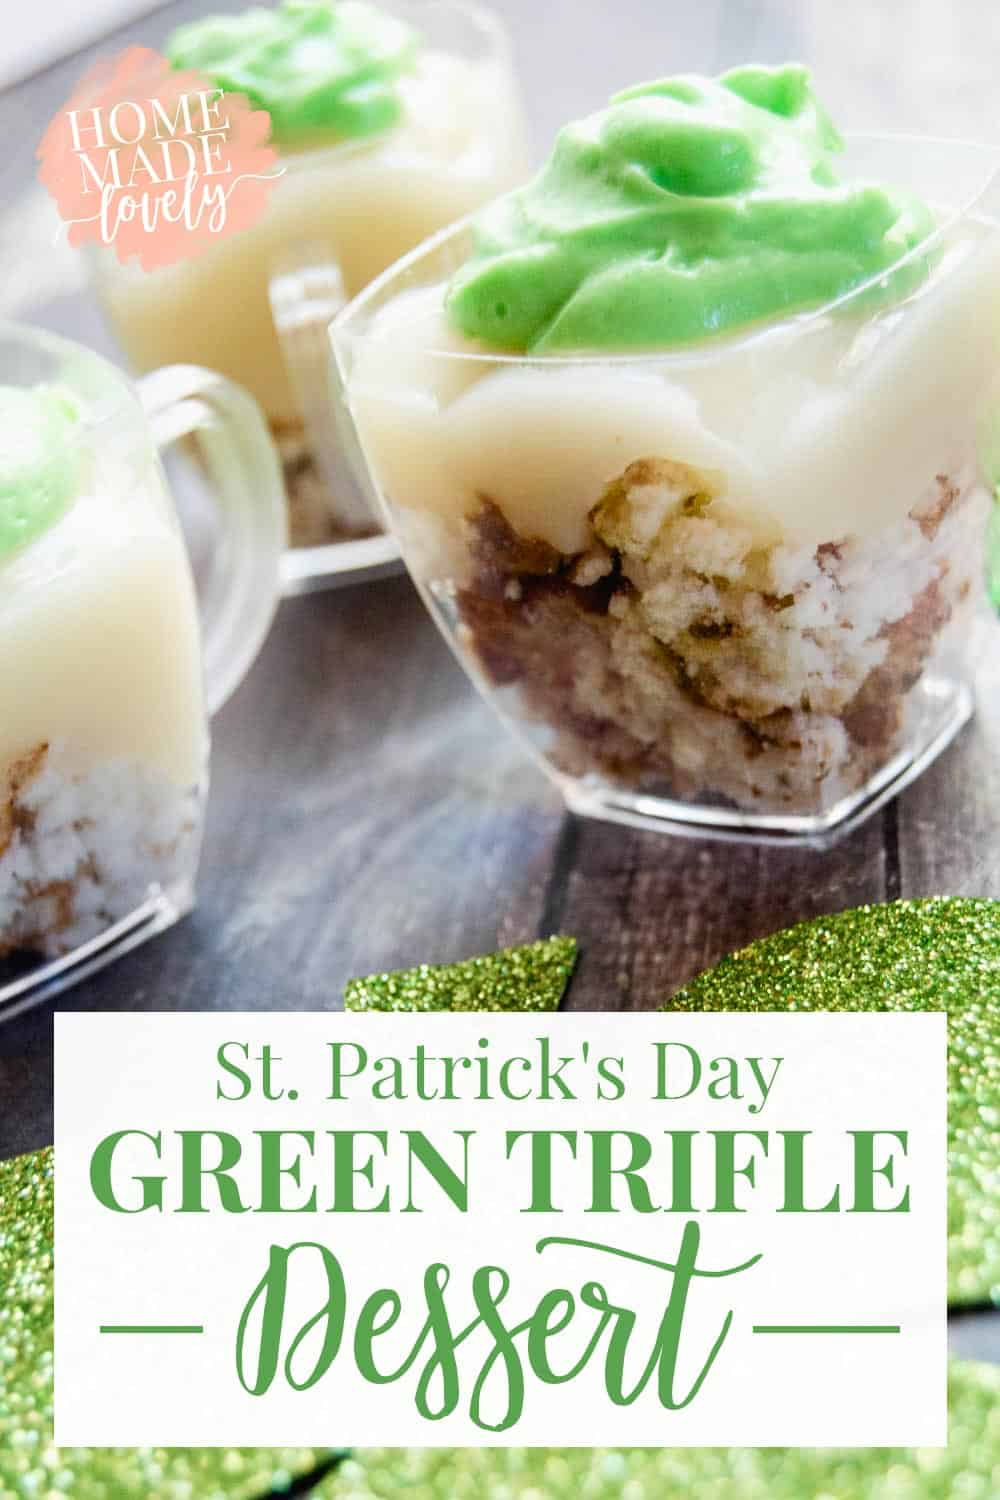 Make a pretty and yummy St. Patrick's Day Green Trifle Dessert!